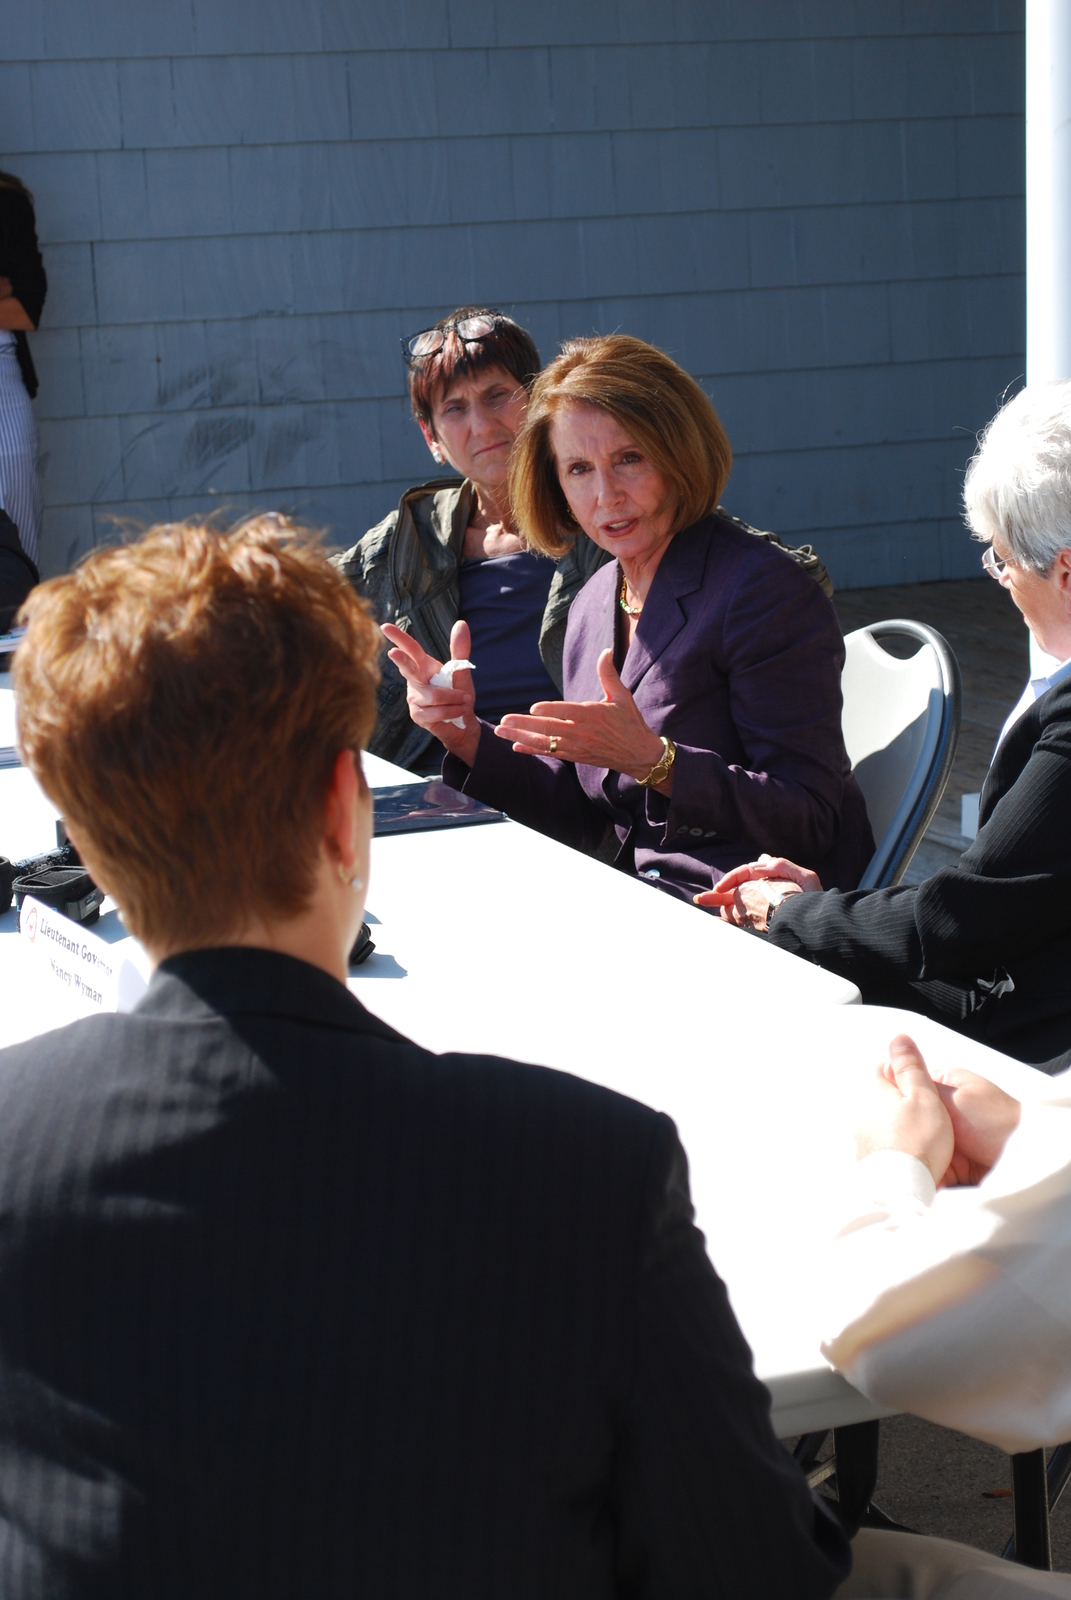 Coastal Storm ^ Flooding ^ Hurricane/Tropical Storm ^ Severe Storm - East Haven, Conn. , September 16, 2011 -- Rep. Nancy Pelosi, House Minority Leader, met with FEMA, State and local officials at the FEMA DRC in East Haven, which is in the district represented by Rosa DeLauro (right of Pelosi). Connecticut FCO Stephen De Blasio spoke extensively to Pelosi in outlining FEMA's recovery efforts.  Photo by Michael Raphael/FEMA